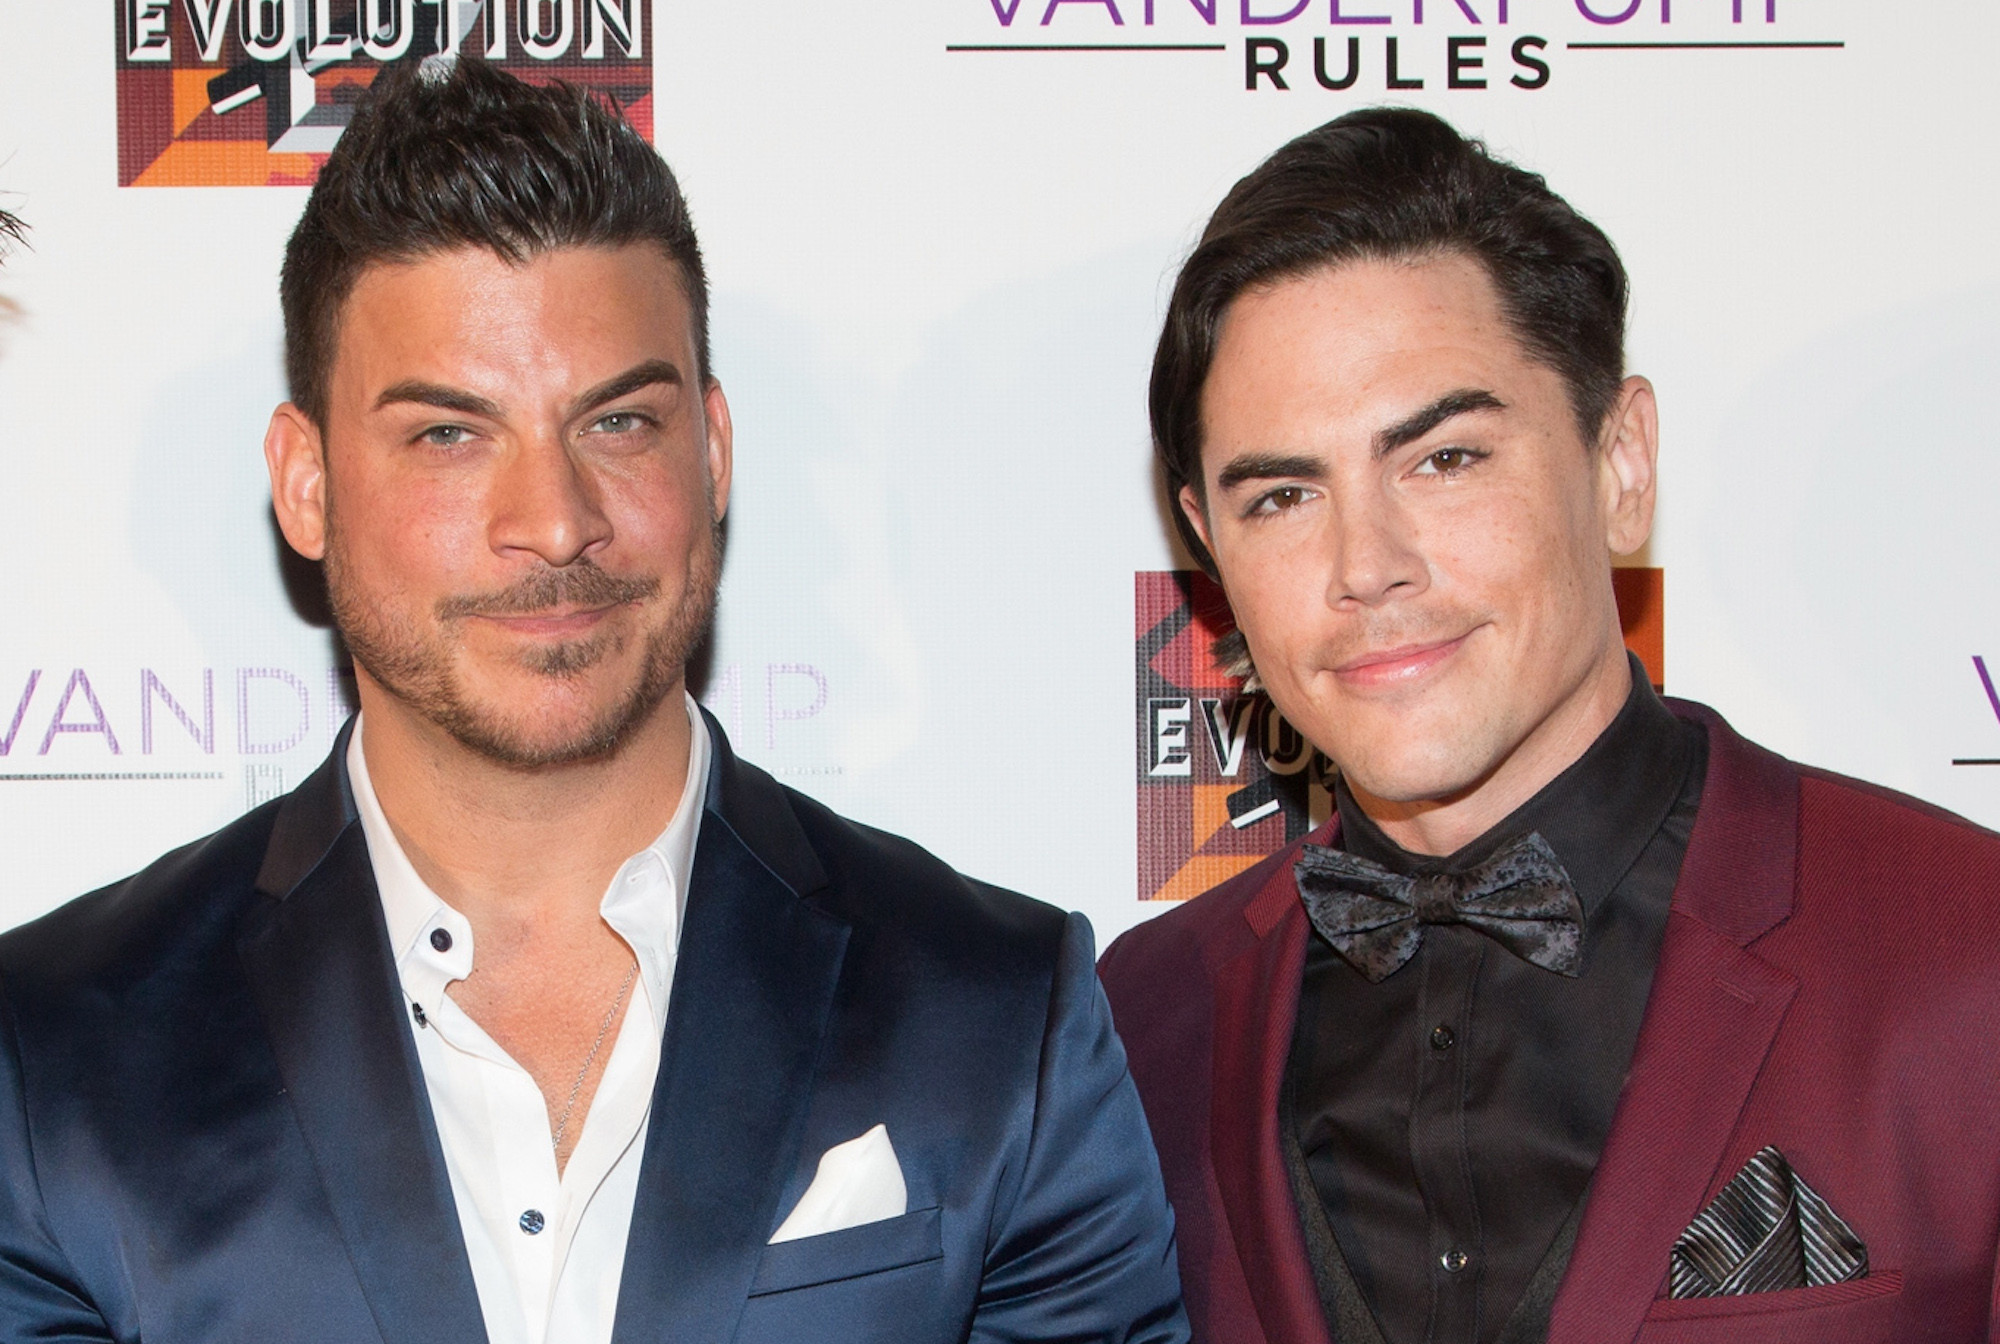 """""""jax-taylor-and-tom-sandoval-working-on-fixing-their-friendship-after-explosive-fallout-will-things-ever-be-the-same-again"""""""